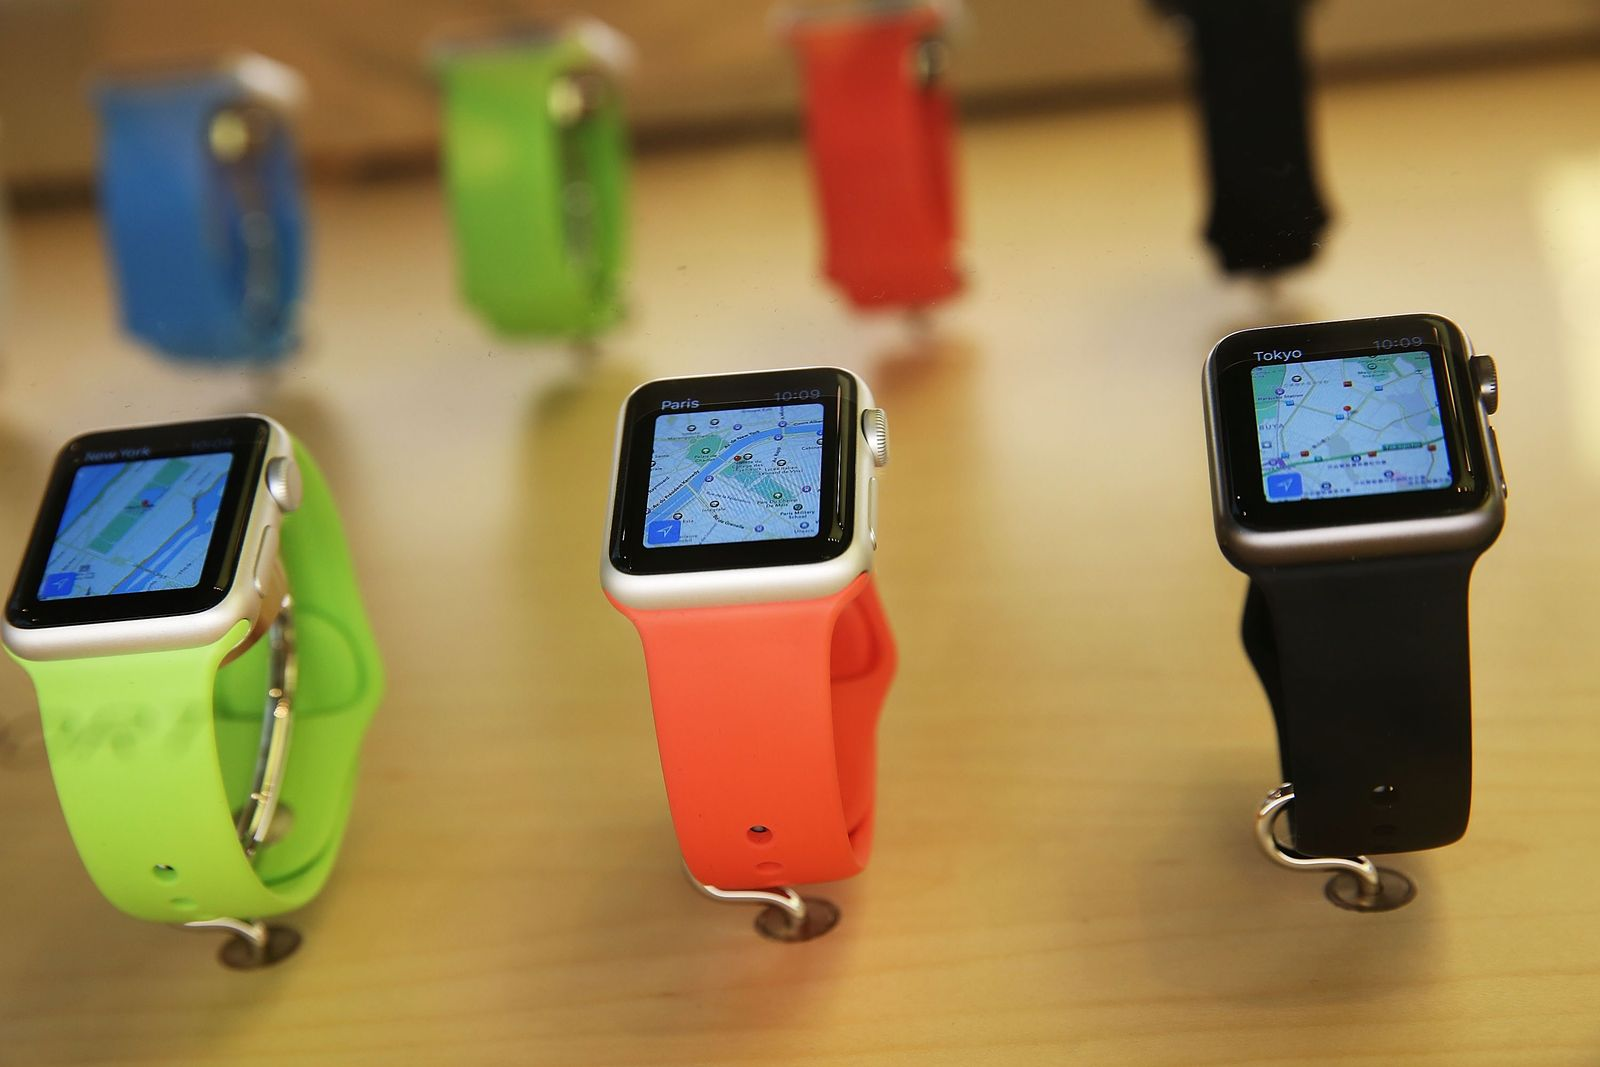 US-APPLE-PREVIEWS-ITS-NEW-IWATCH